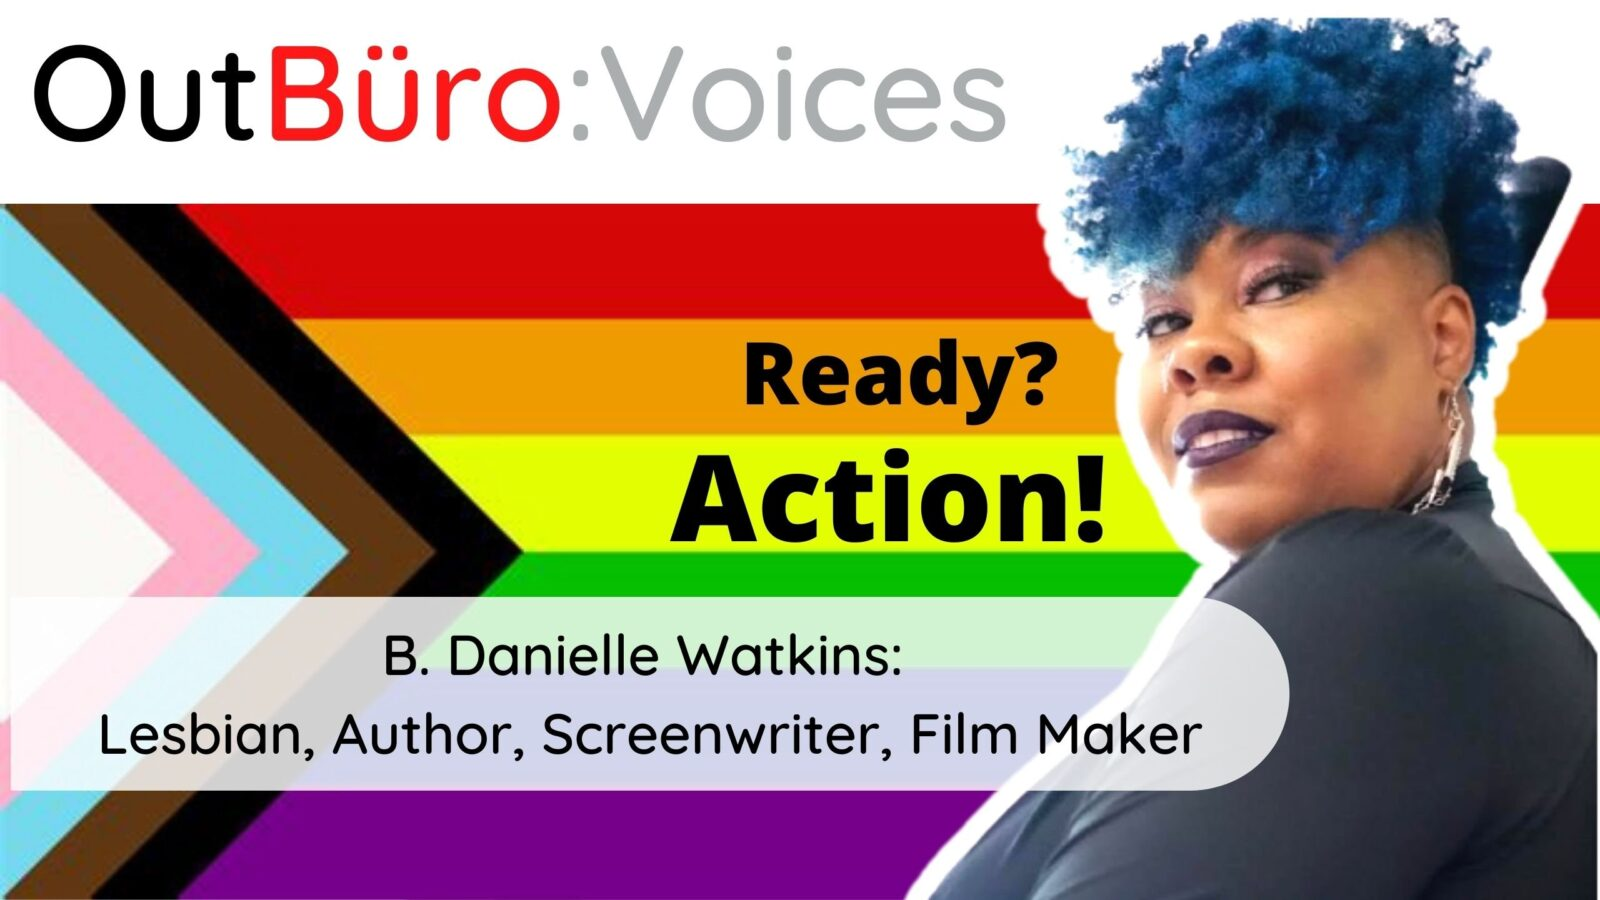 B. Danielle Watkins_ Lesbian, Author, Screenwriter, Film Maker lgbt out lesbian entrepreneur lgbtq gay business owners queer community OutBuro